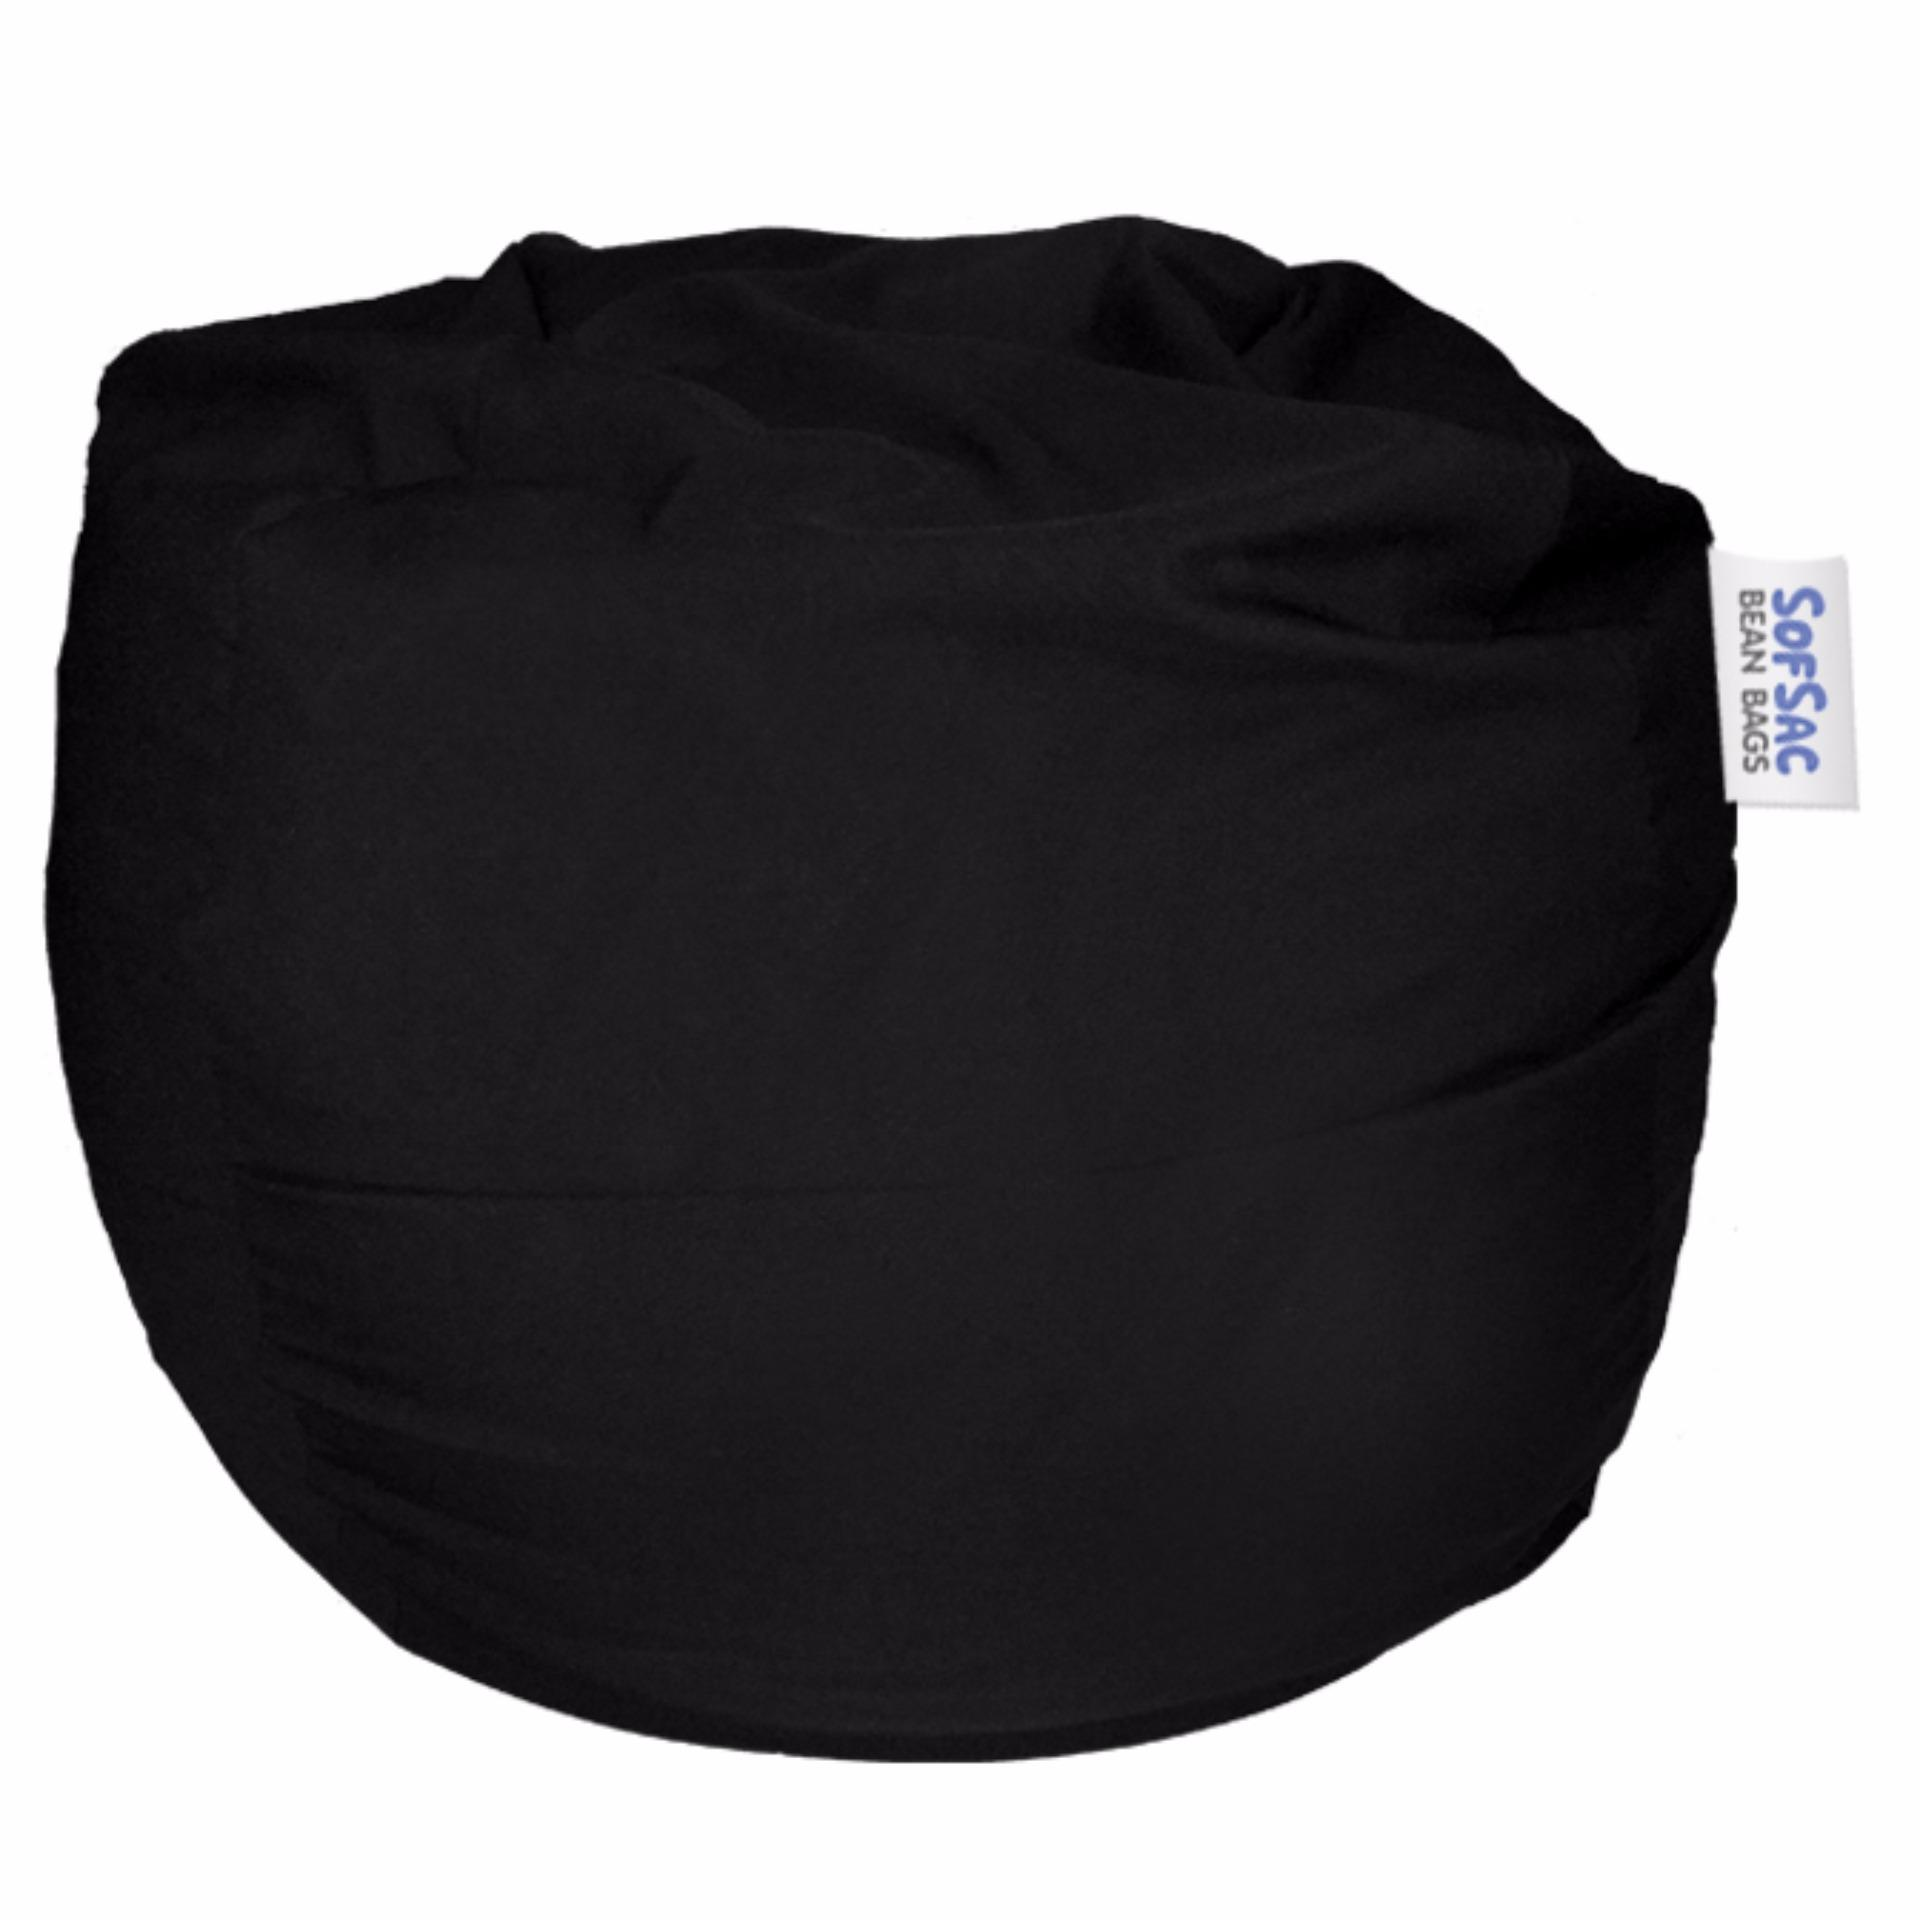 SofSac Round Bean Bag Chair   Large